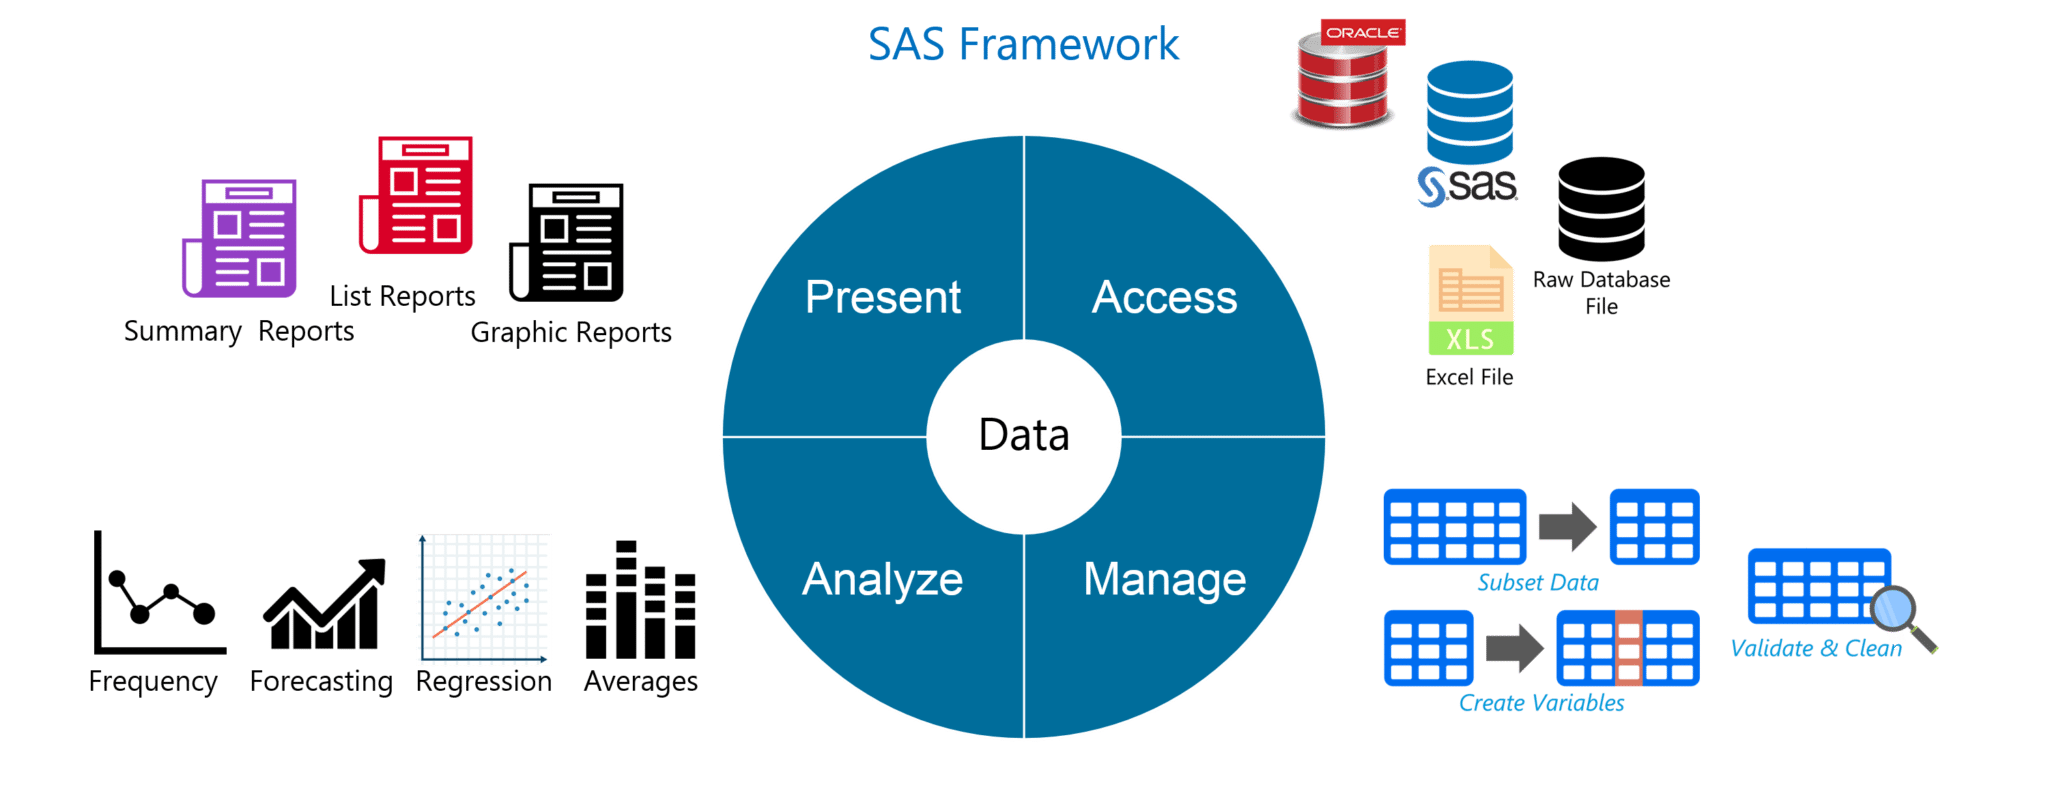 sas framework sas interview questions edureka